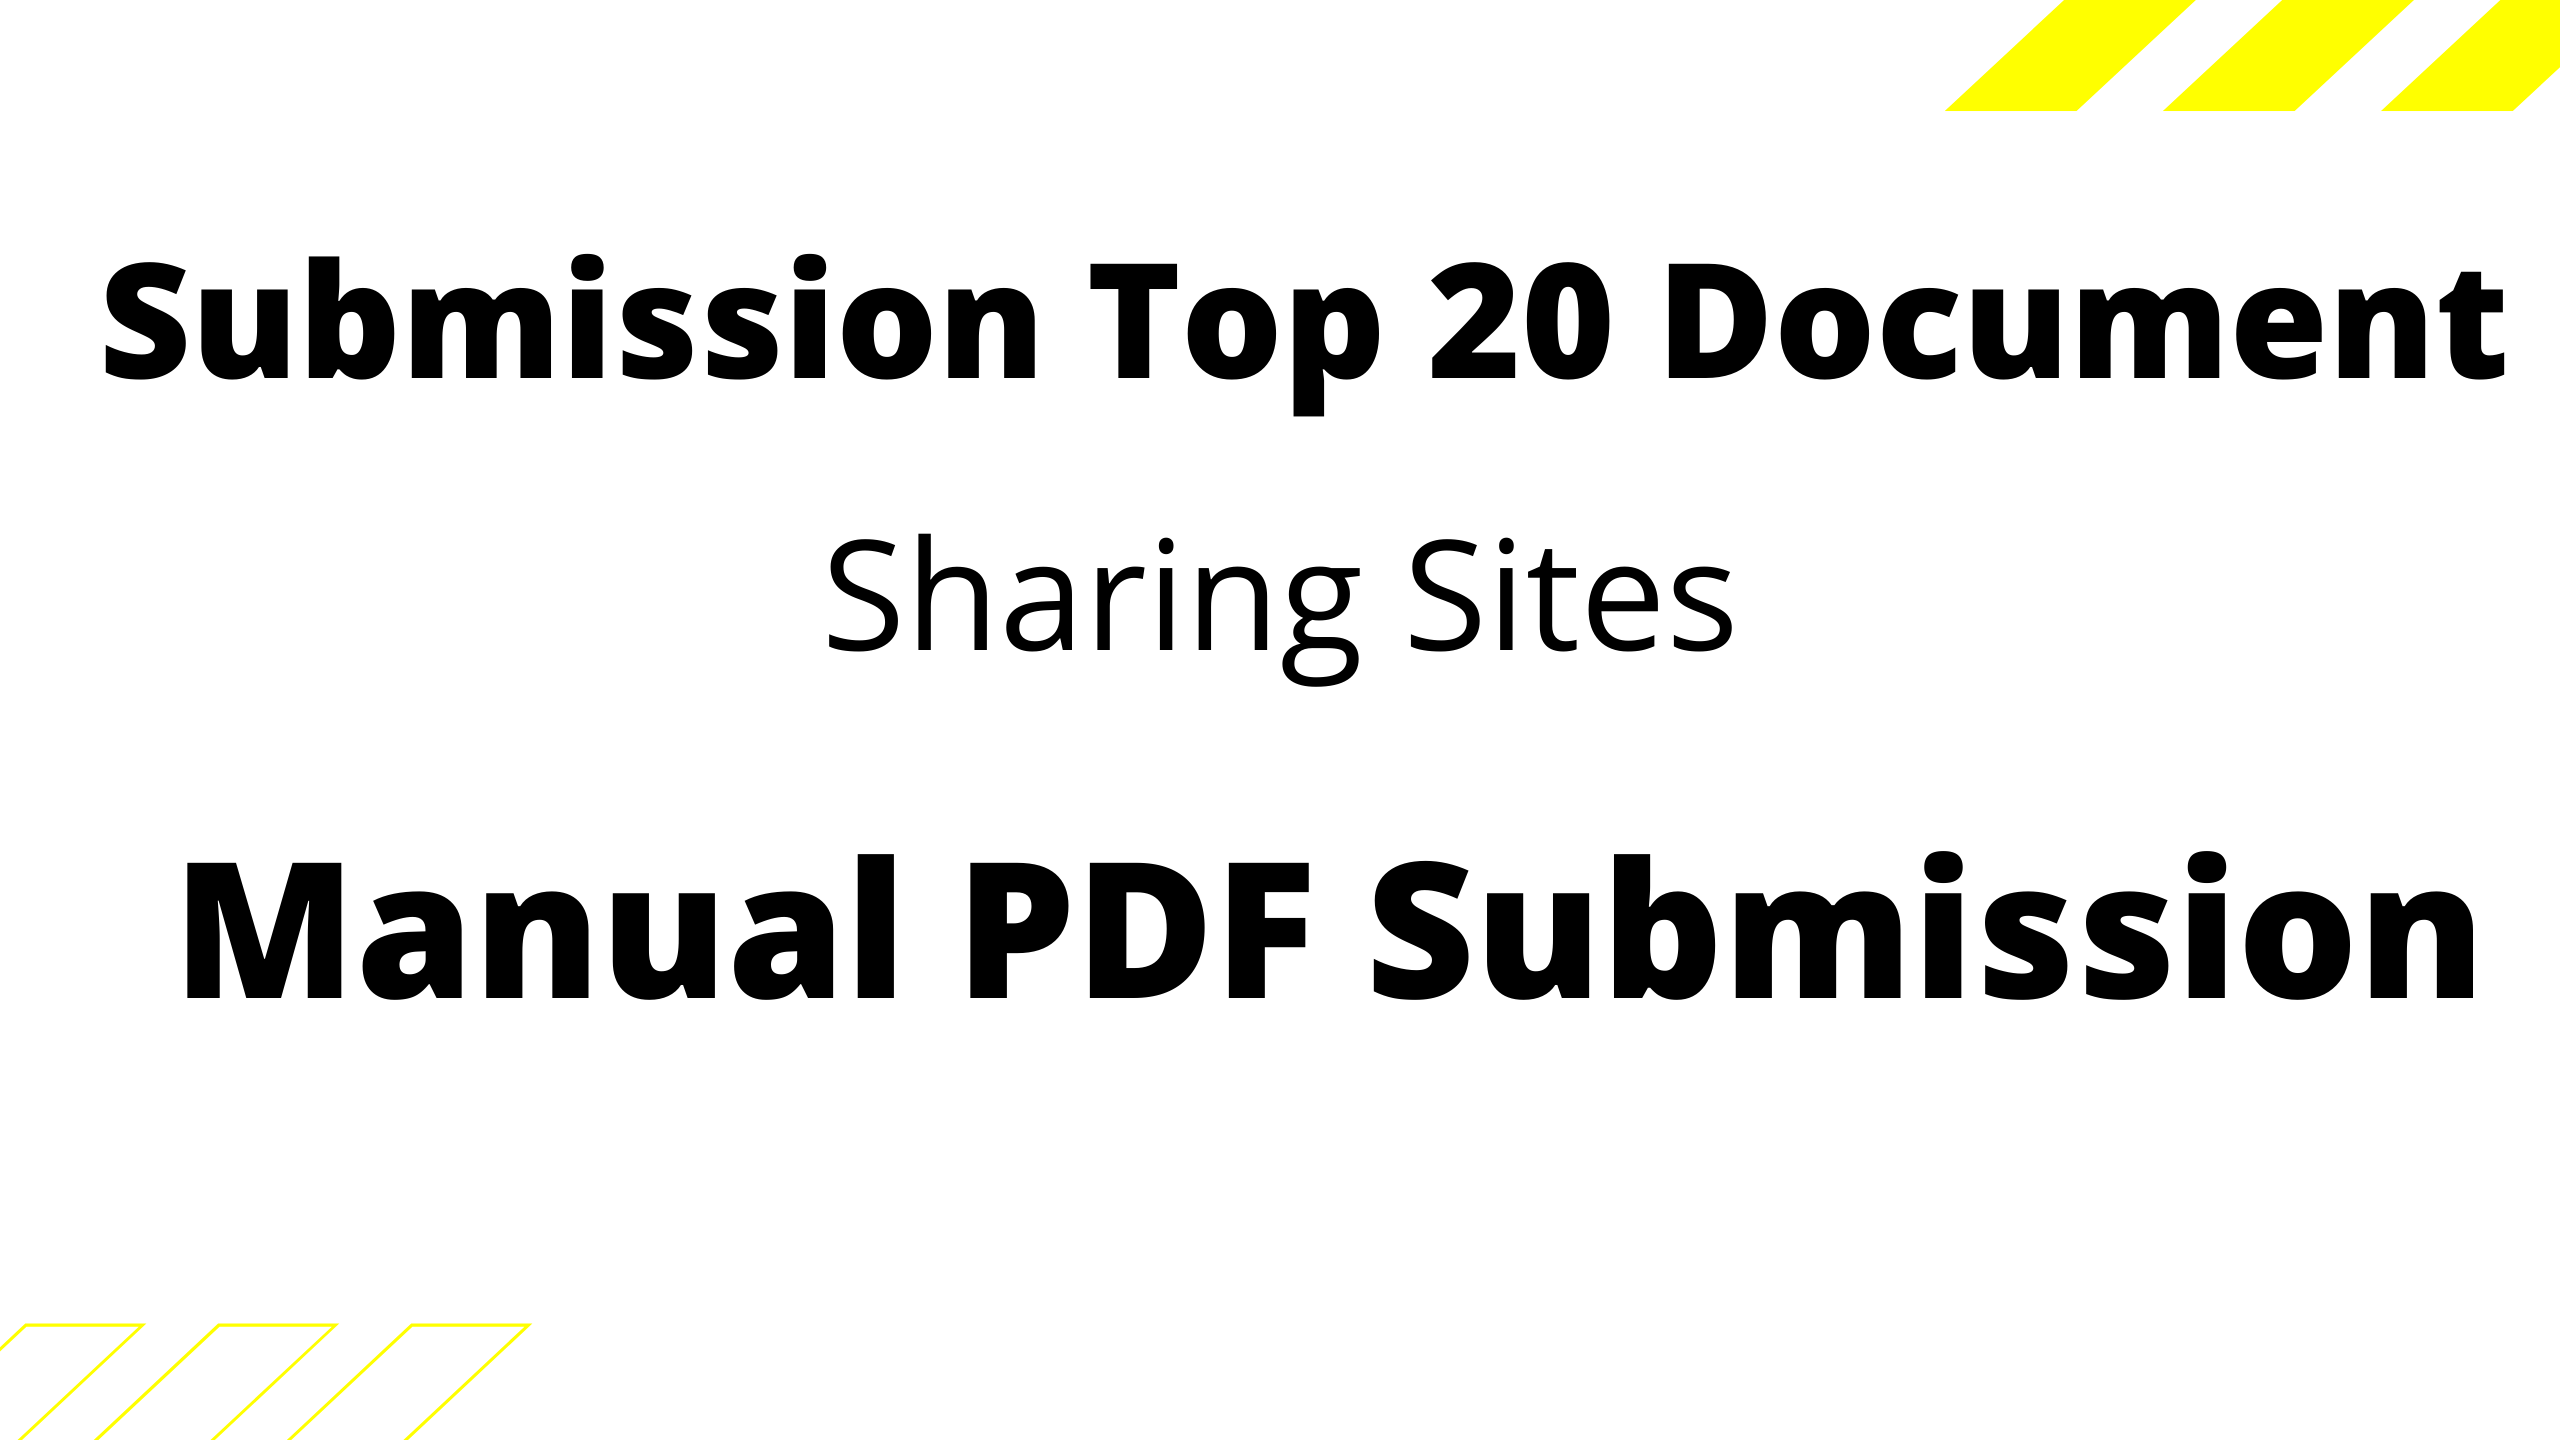 20 Manual PDF Submission on top Document sharing sites 4shared/docstoc/Slideshare etc